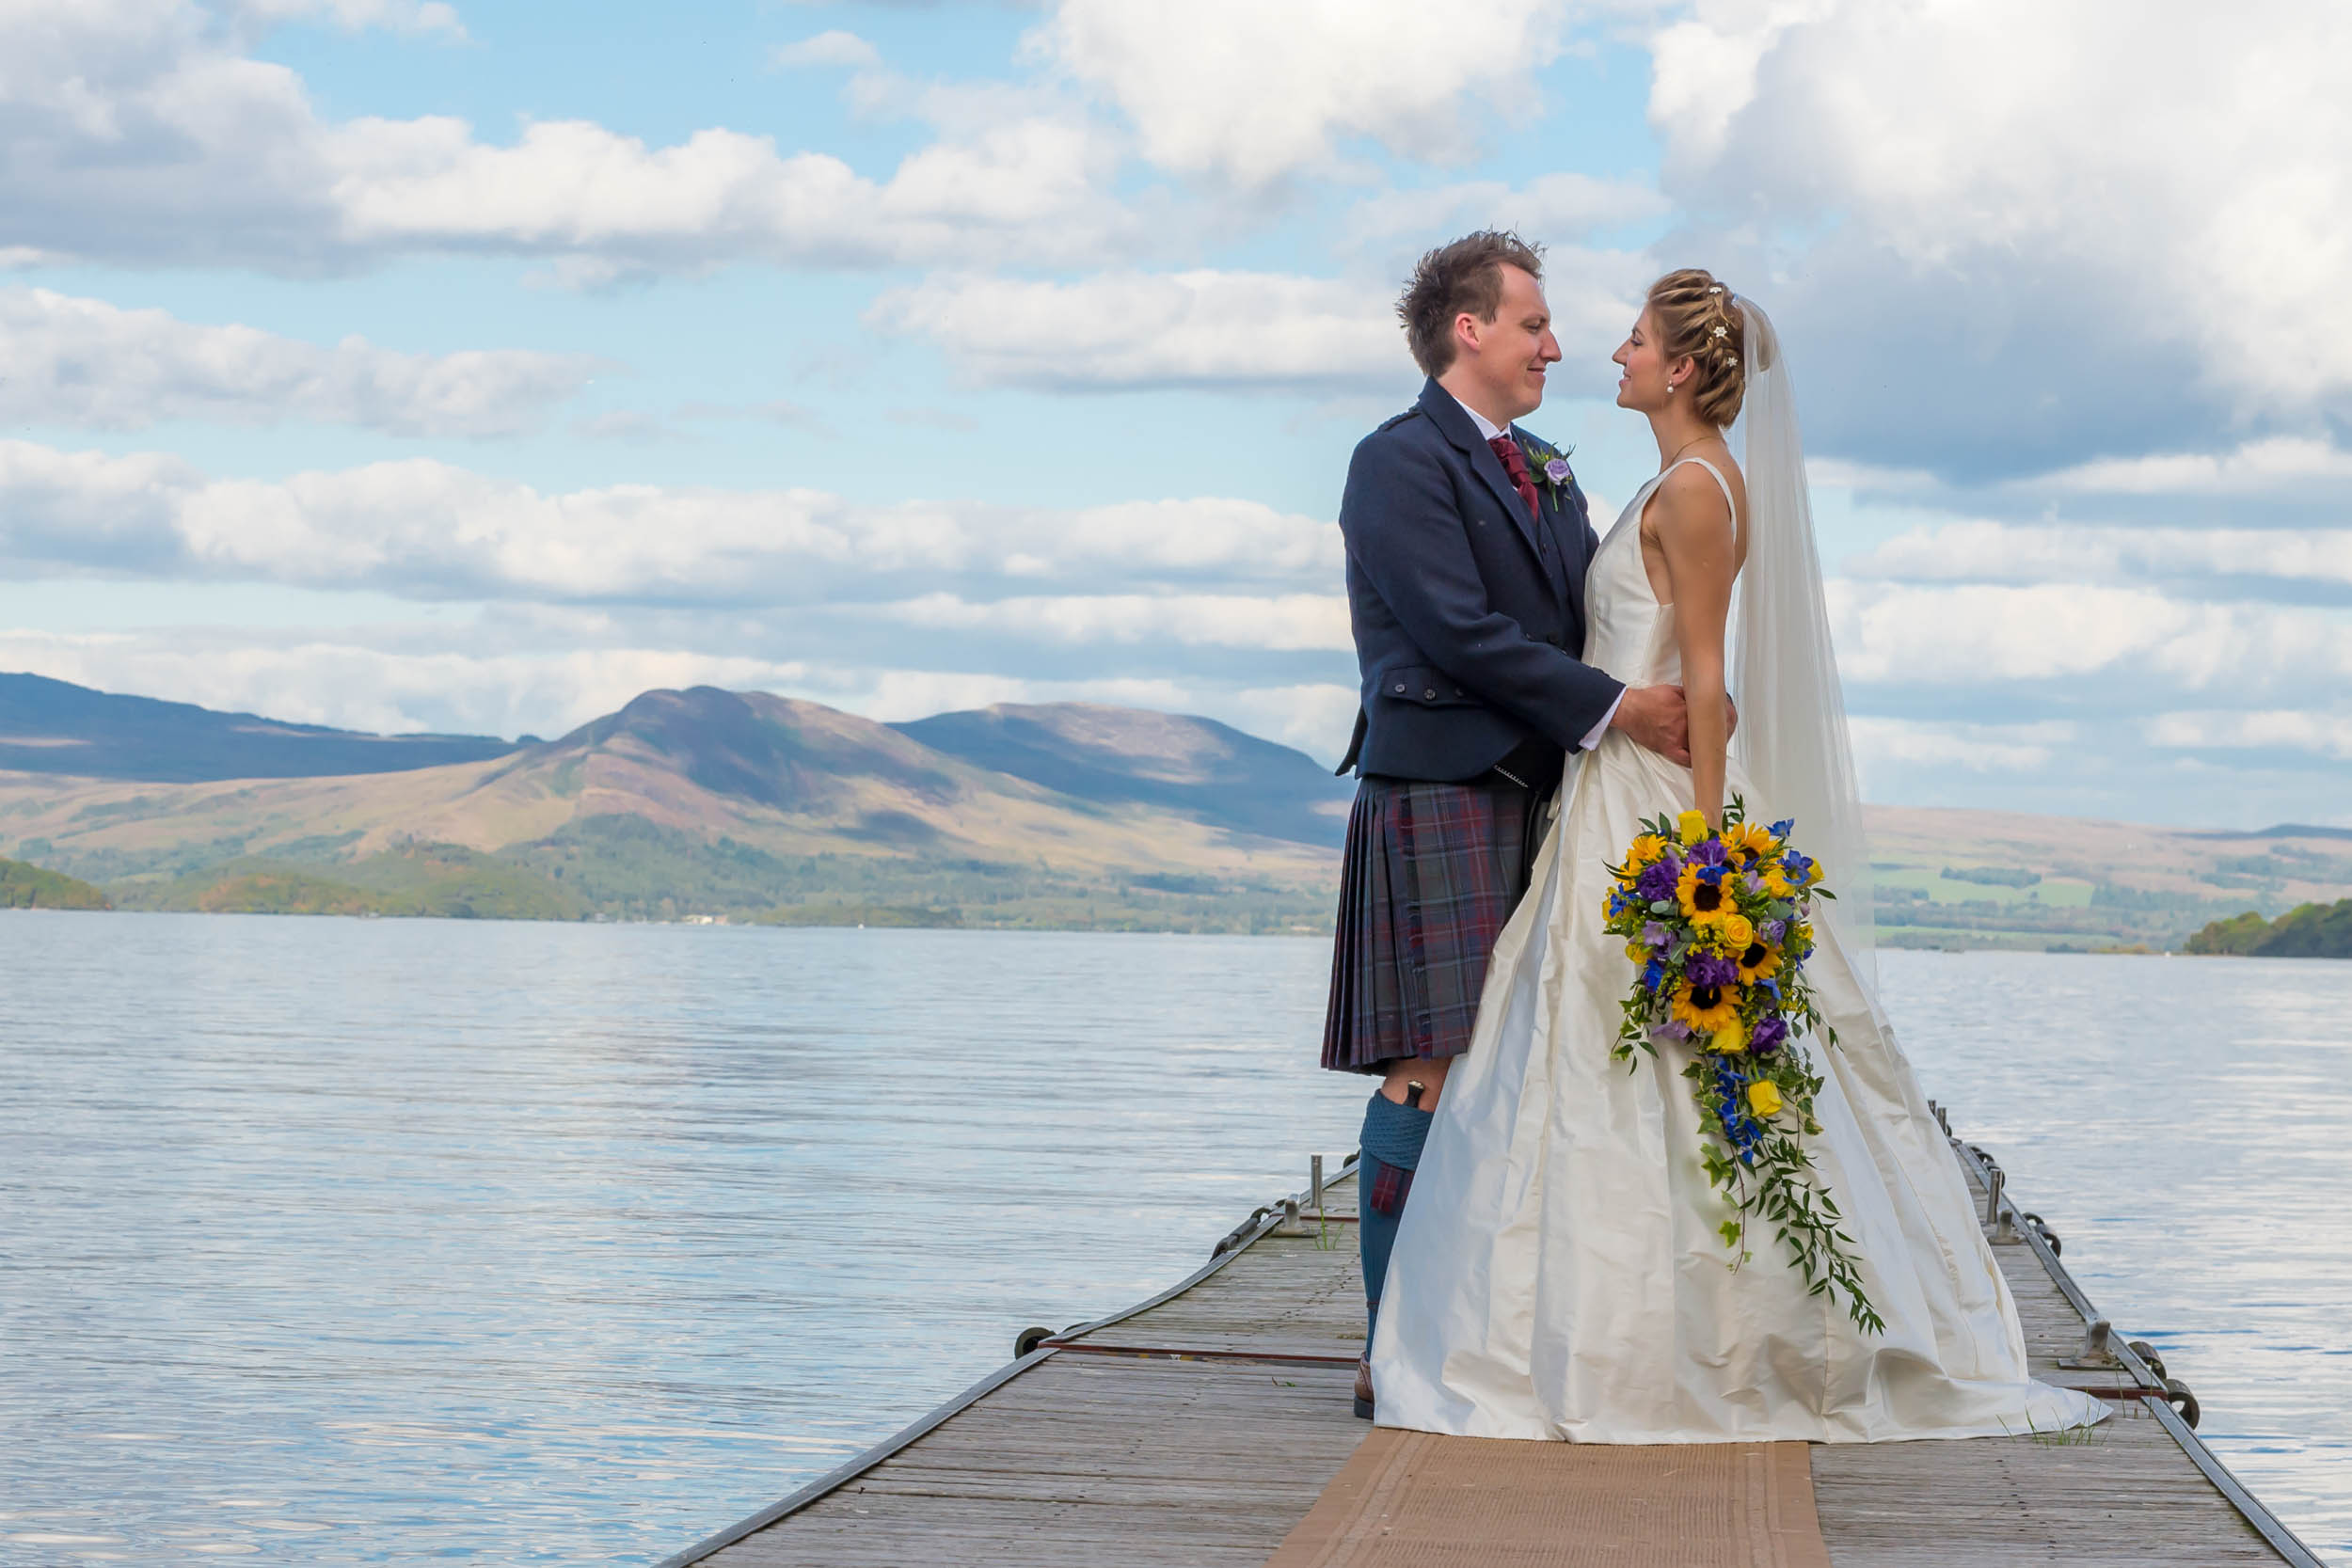 Wedding Photography at The Cruin, Loch Lomond